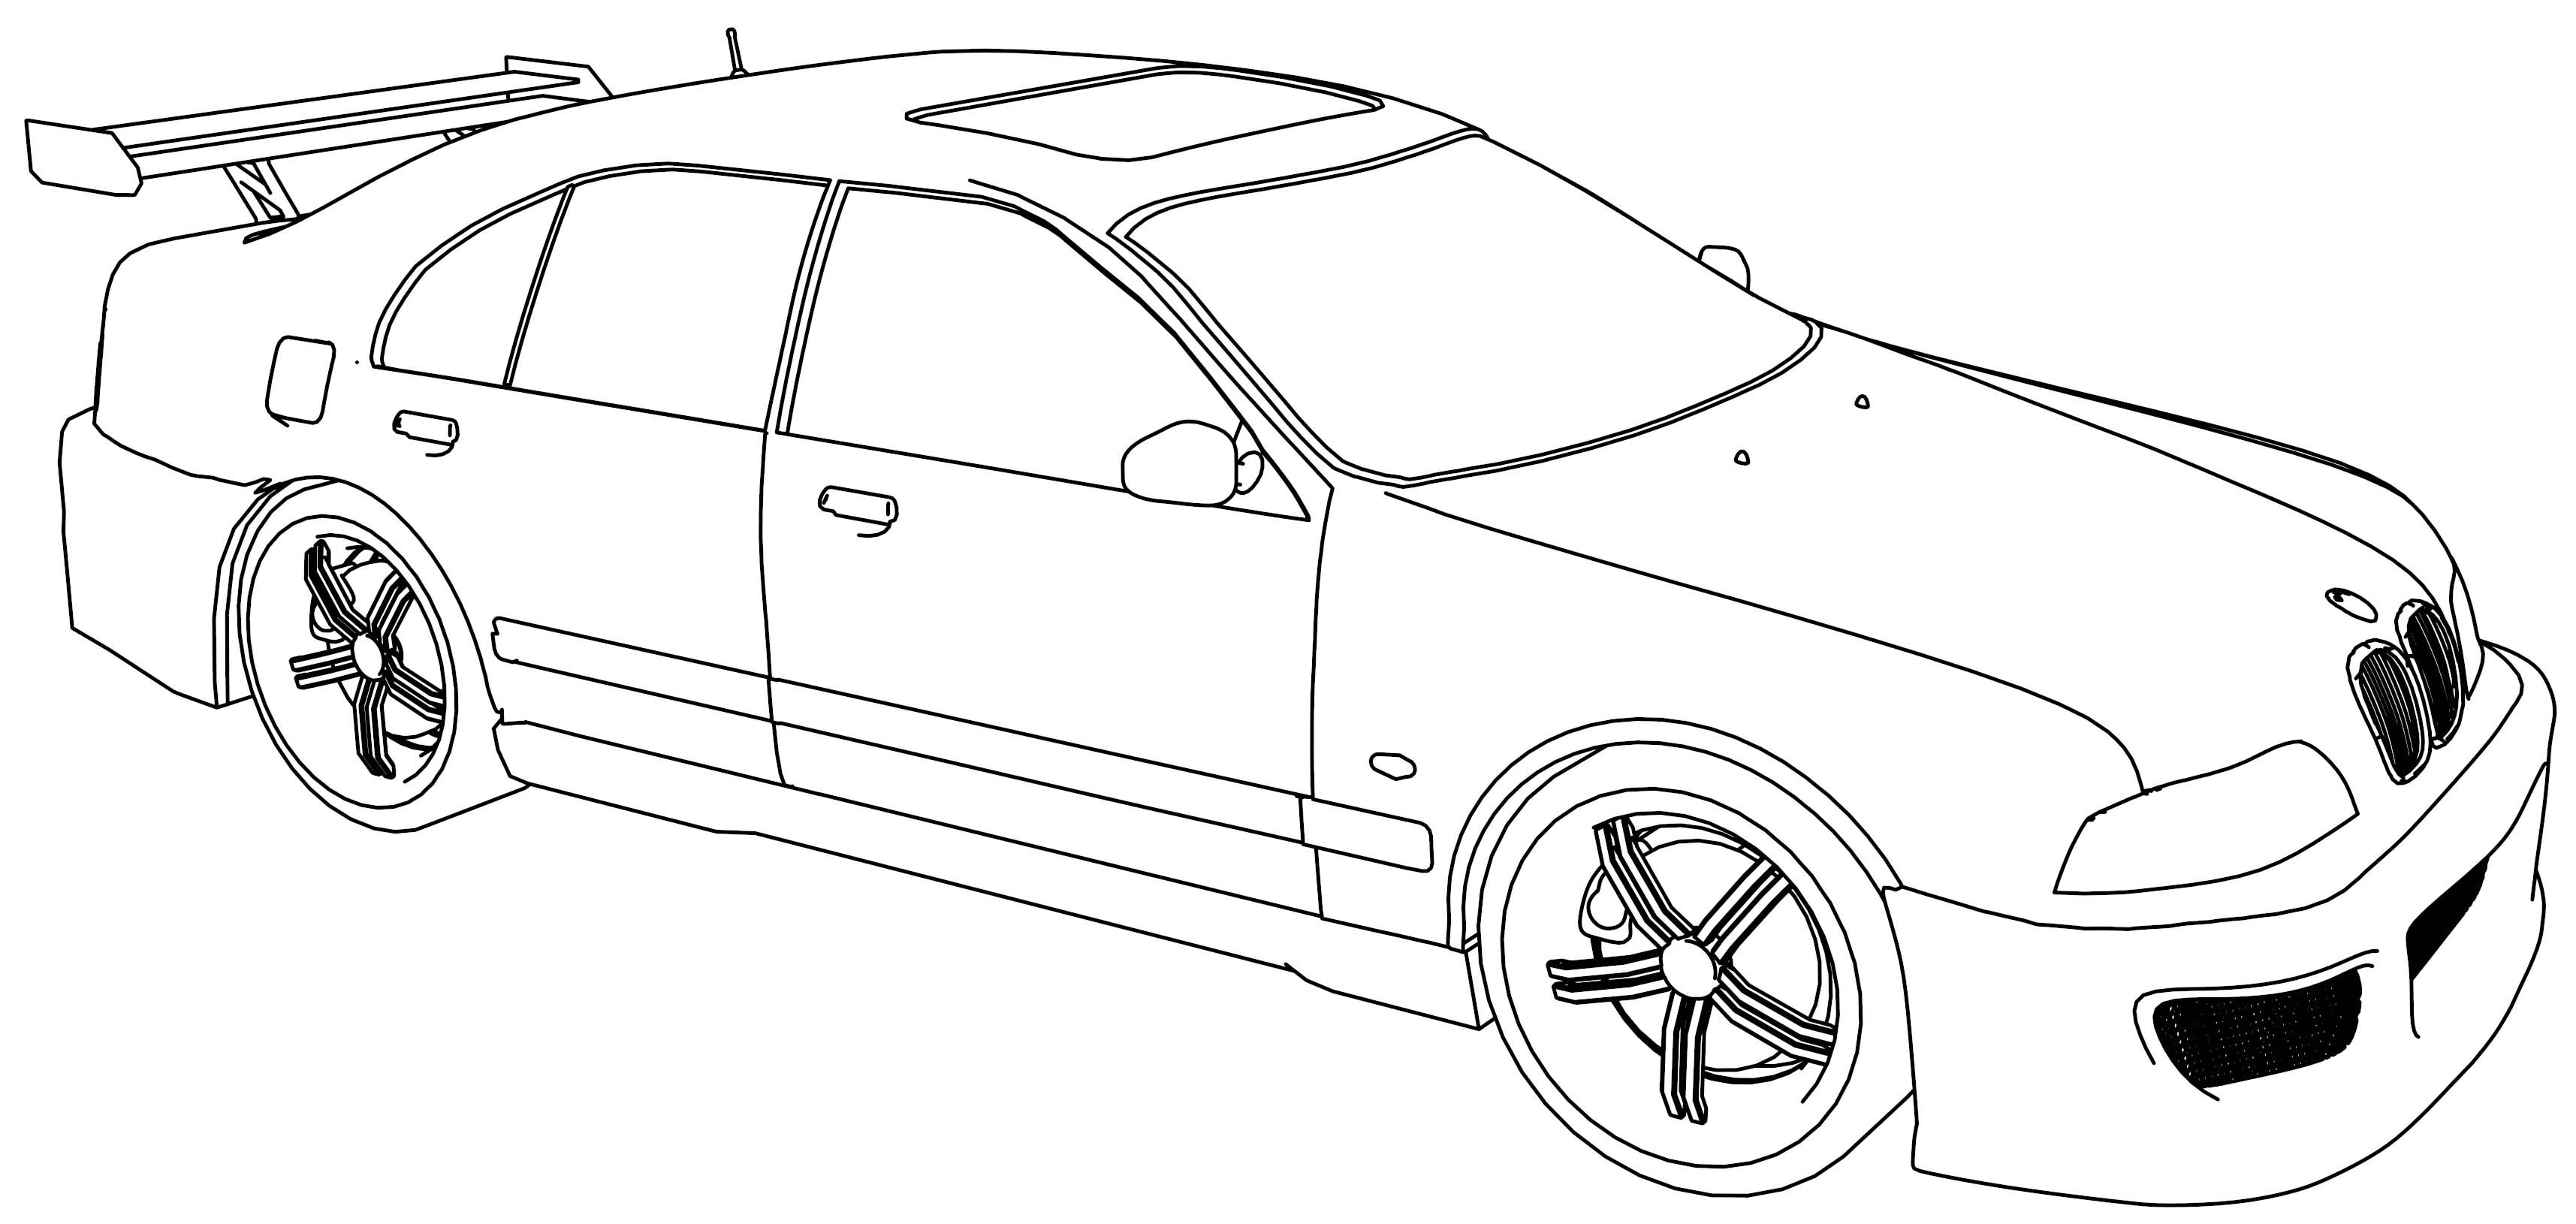 Bmw M5 Sport Tuning Car Coloring Page on driving car